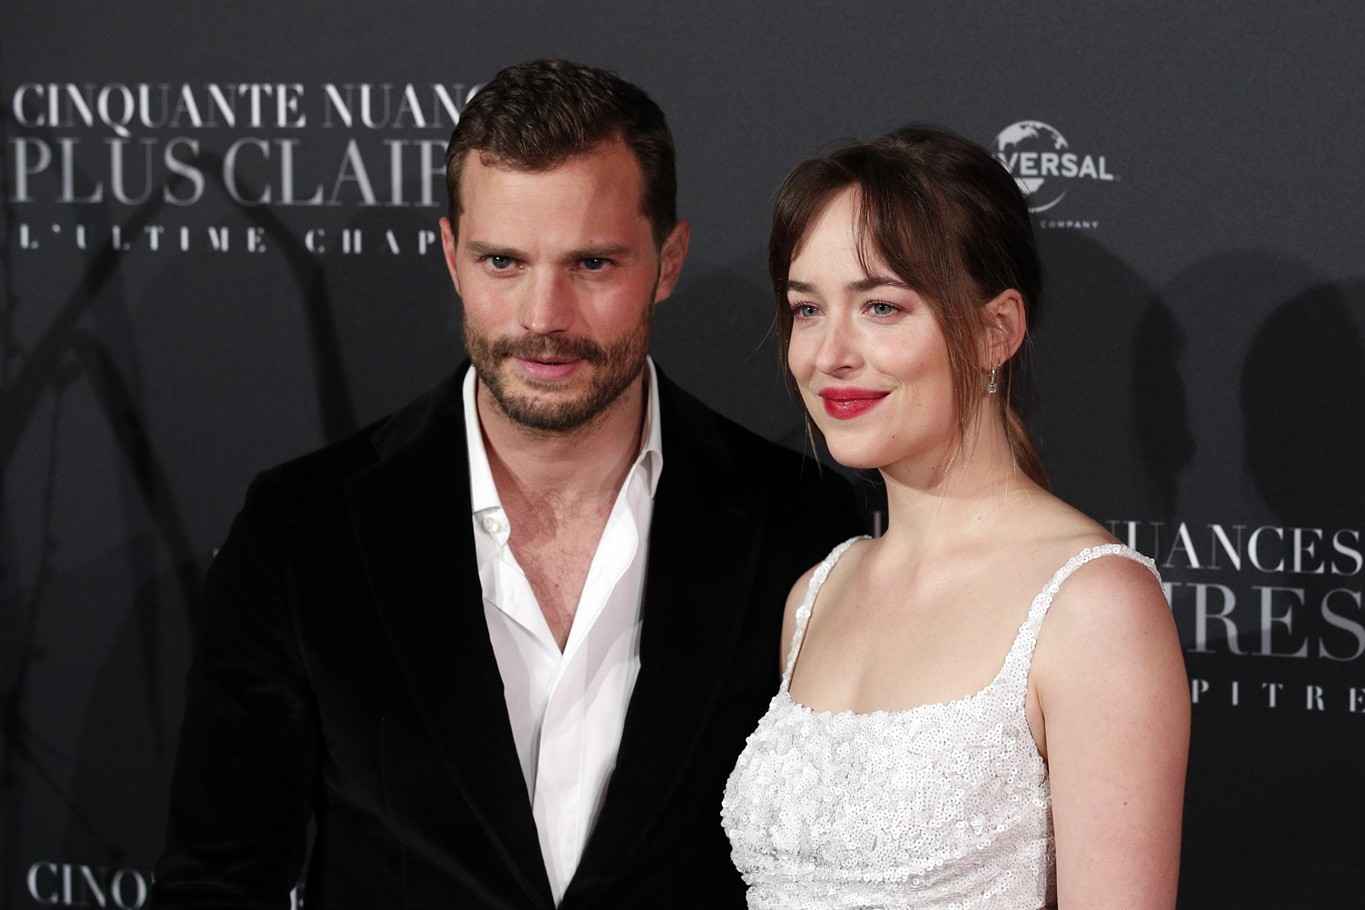 'Fifty Shades Freed' tops box office with $38.8 million